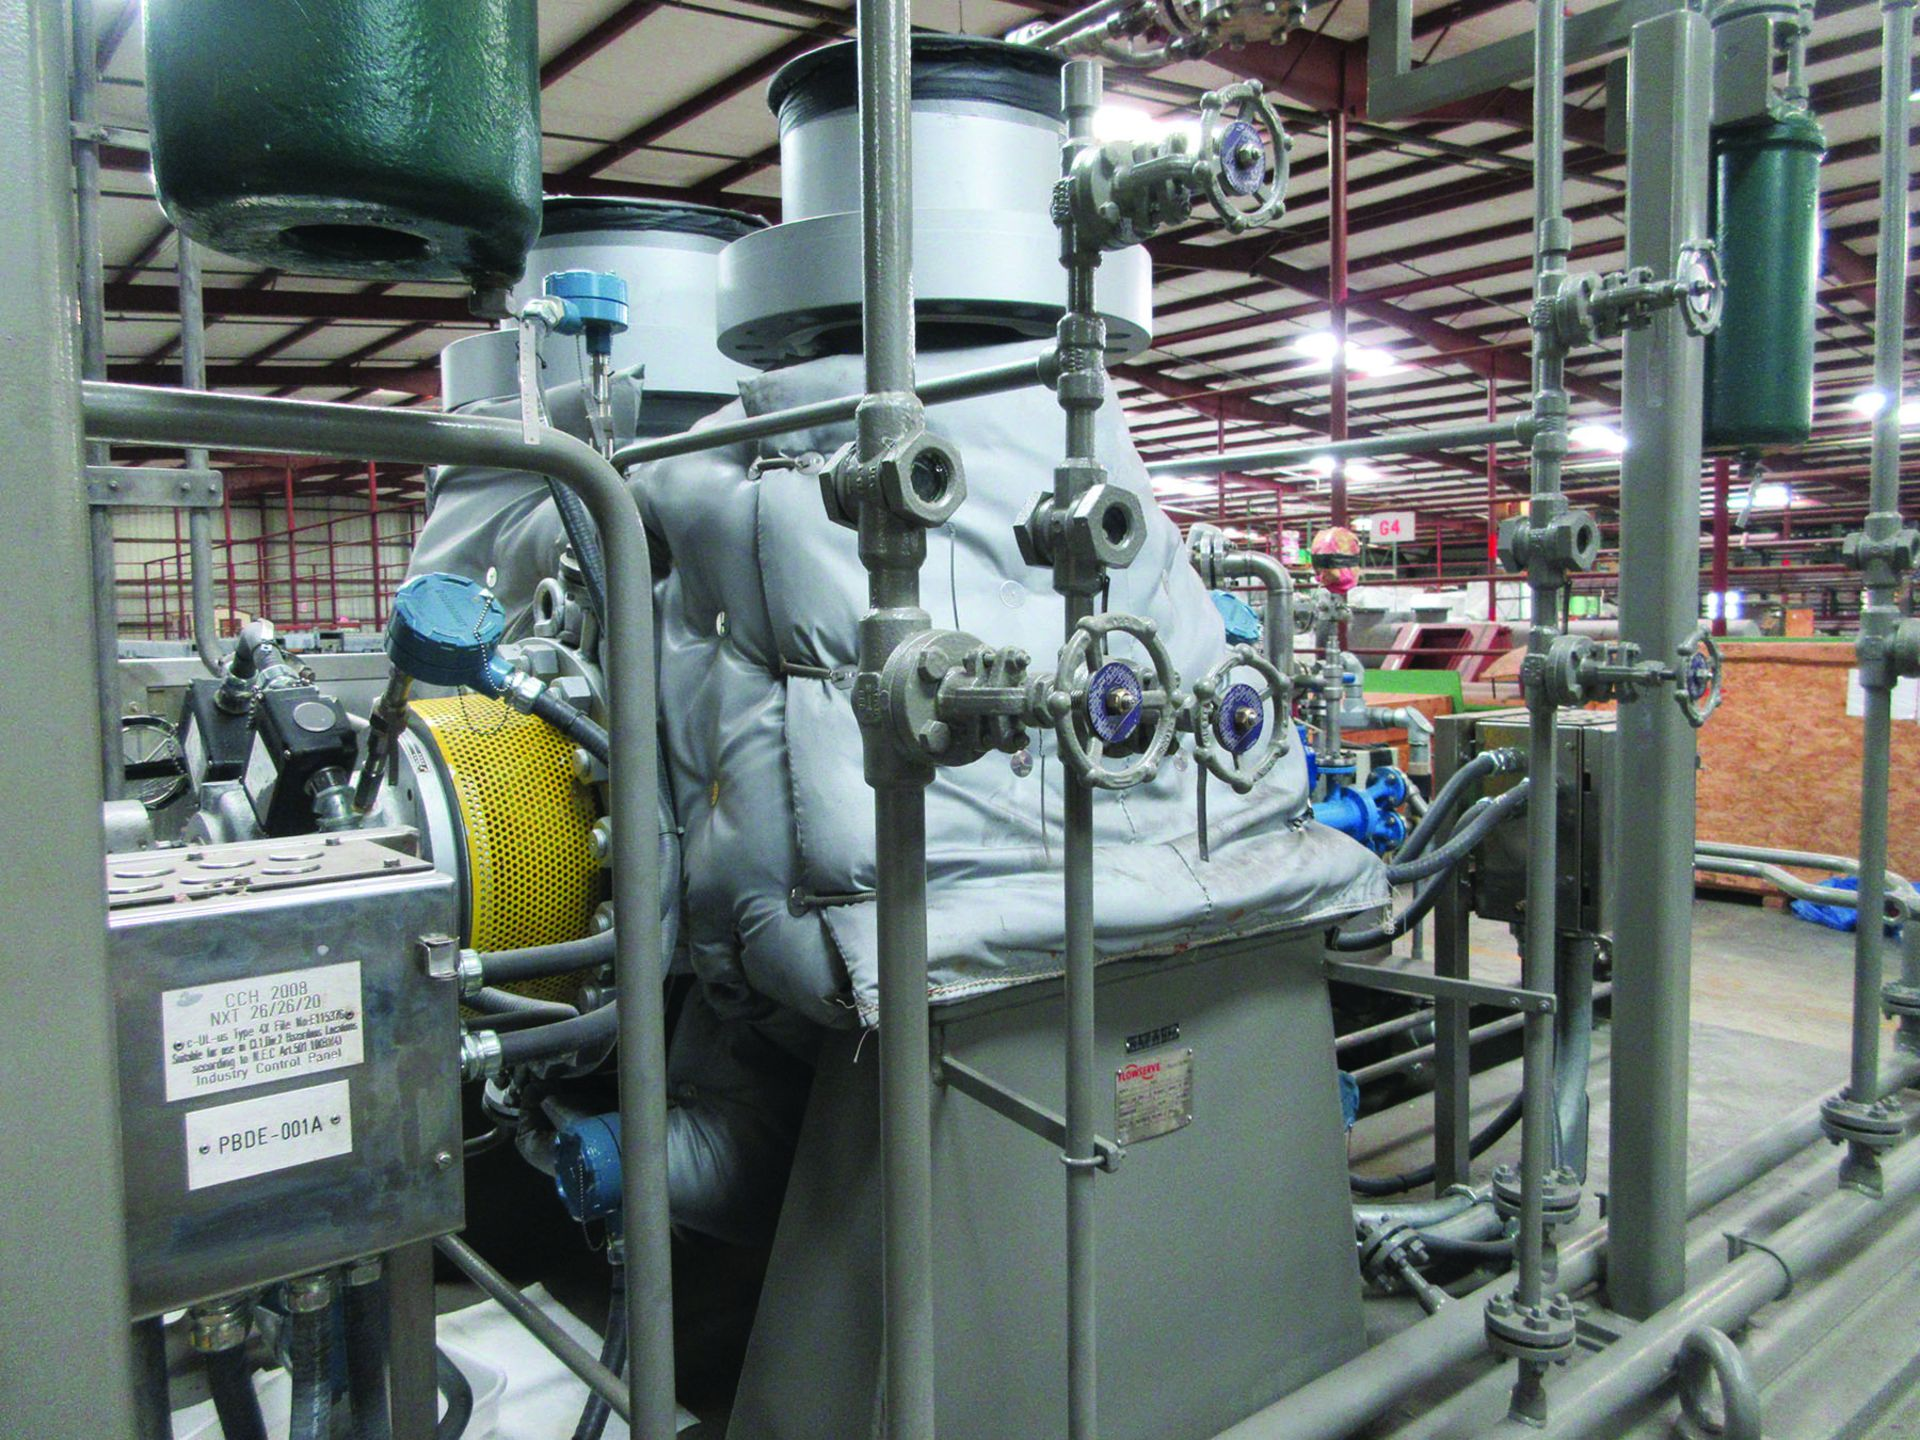 BOILER FEEDWATER BOOSTER PUMP SLED, GE 3,000 HP INDUCTION MOTOR 3585 RPM, 6600 VOLTS, 8313S FRAME, - Image 7 of 13